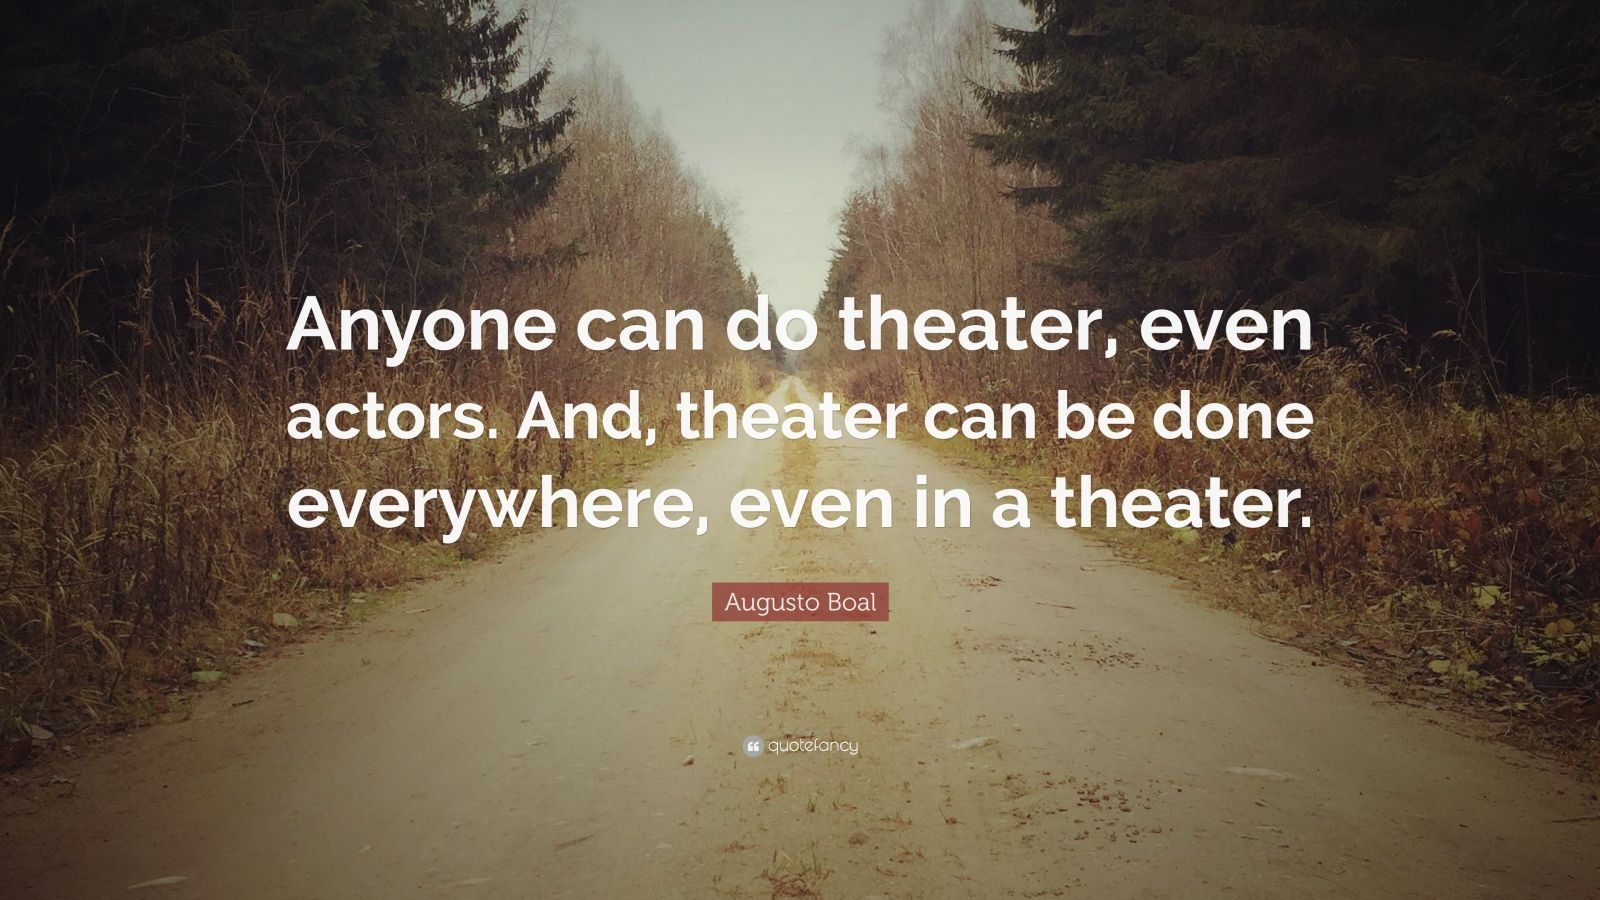 """Augusto Boal Quote: """"Anyone can do theater, even actors. And, theater can be done everywhere, even in a theater."""""""